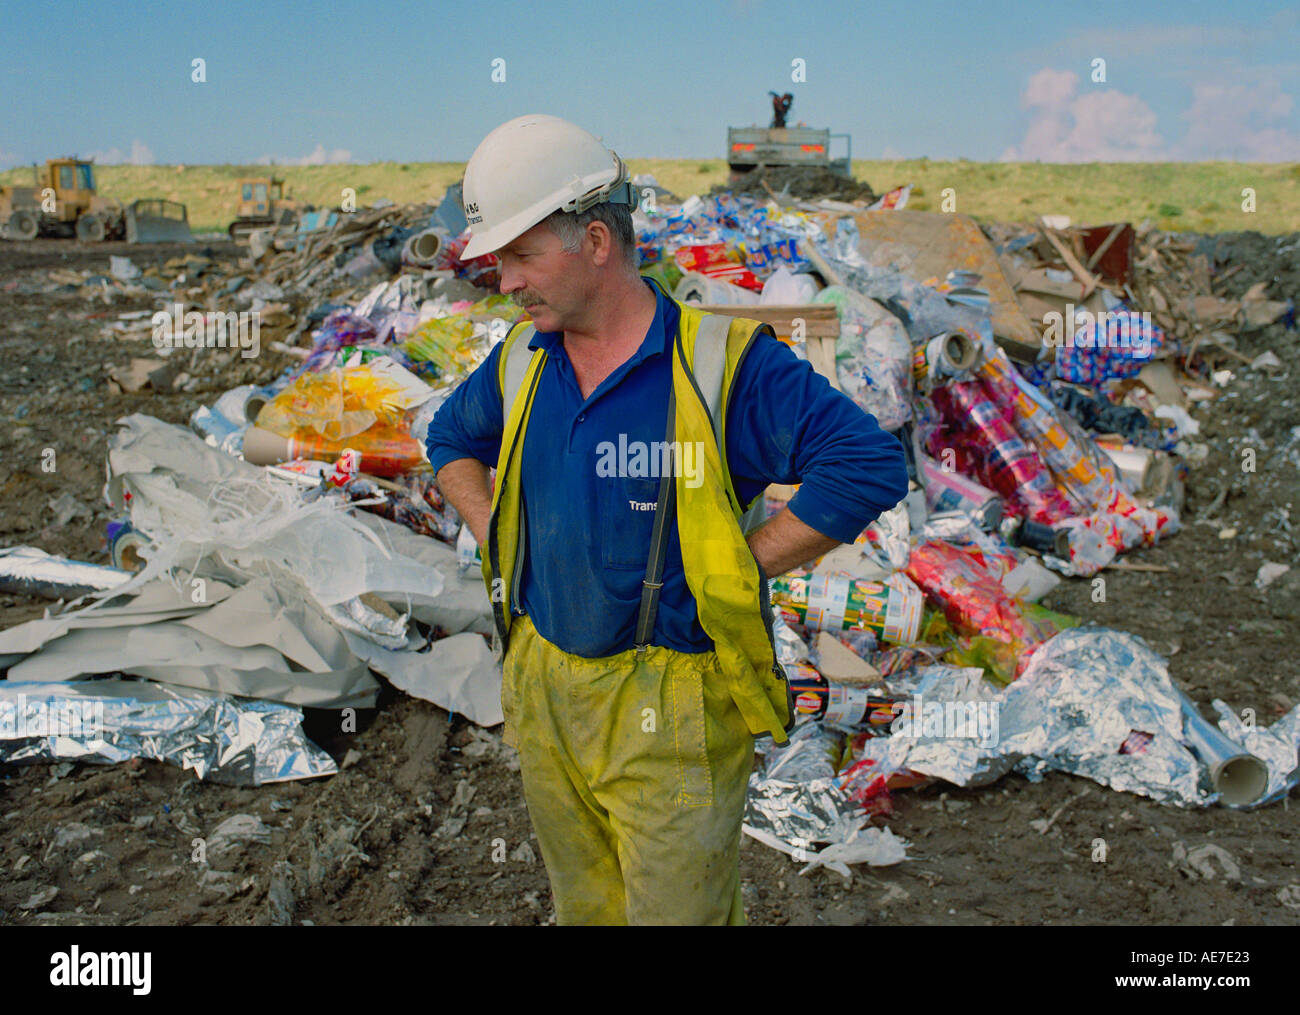 Lorry driver dumping unused Walkers crisp packaging at an industrial landfill site in West Cumbria UK - Stock Image